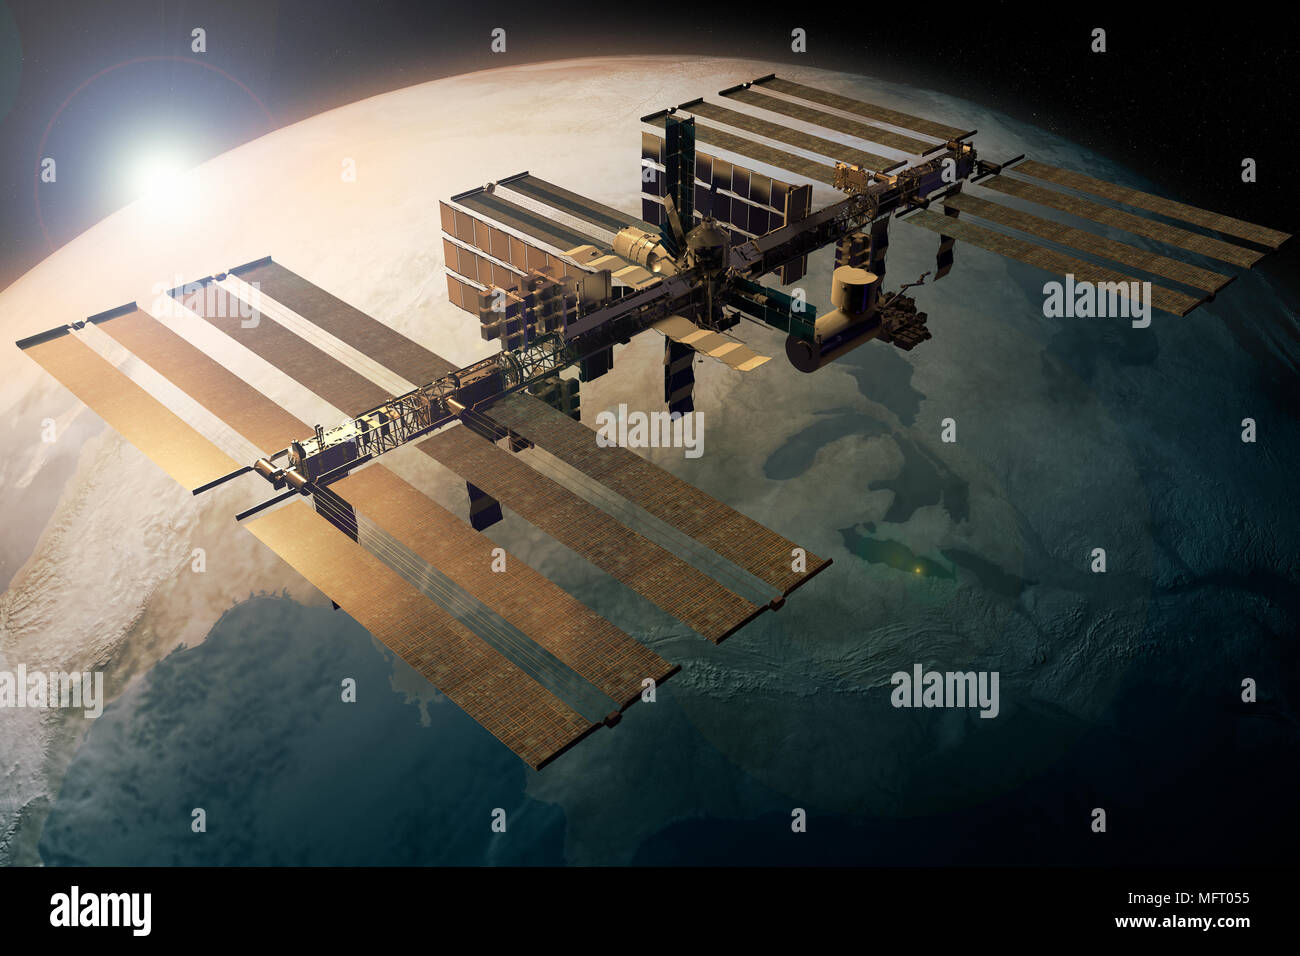 3D rendering of the International Space station orbiting the Earth - Stock Image